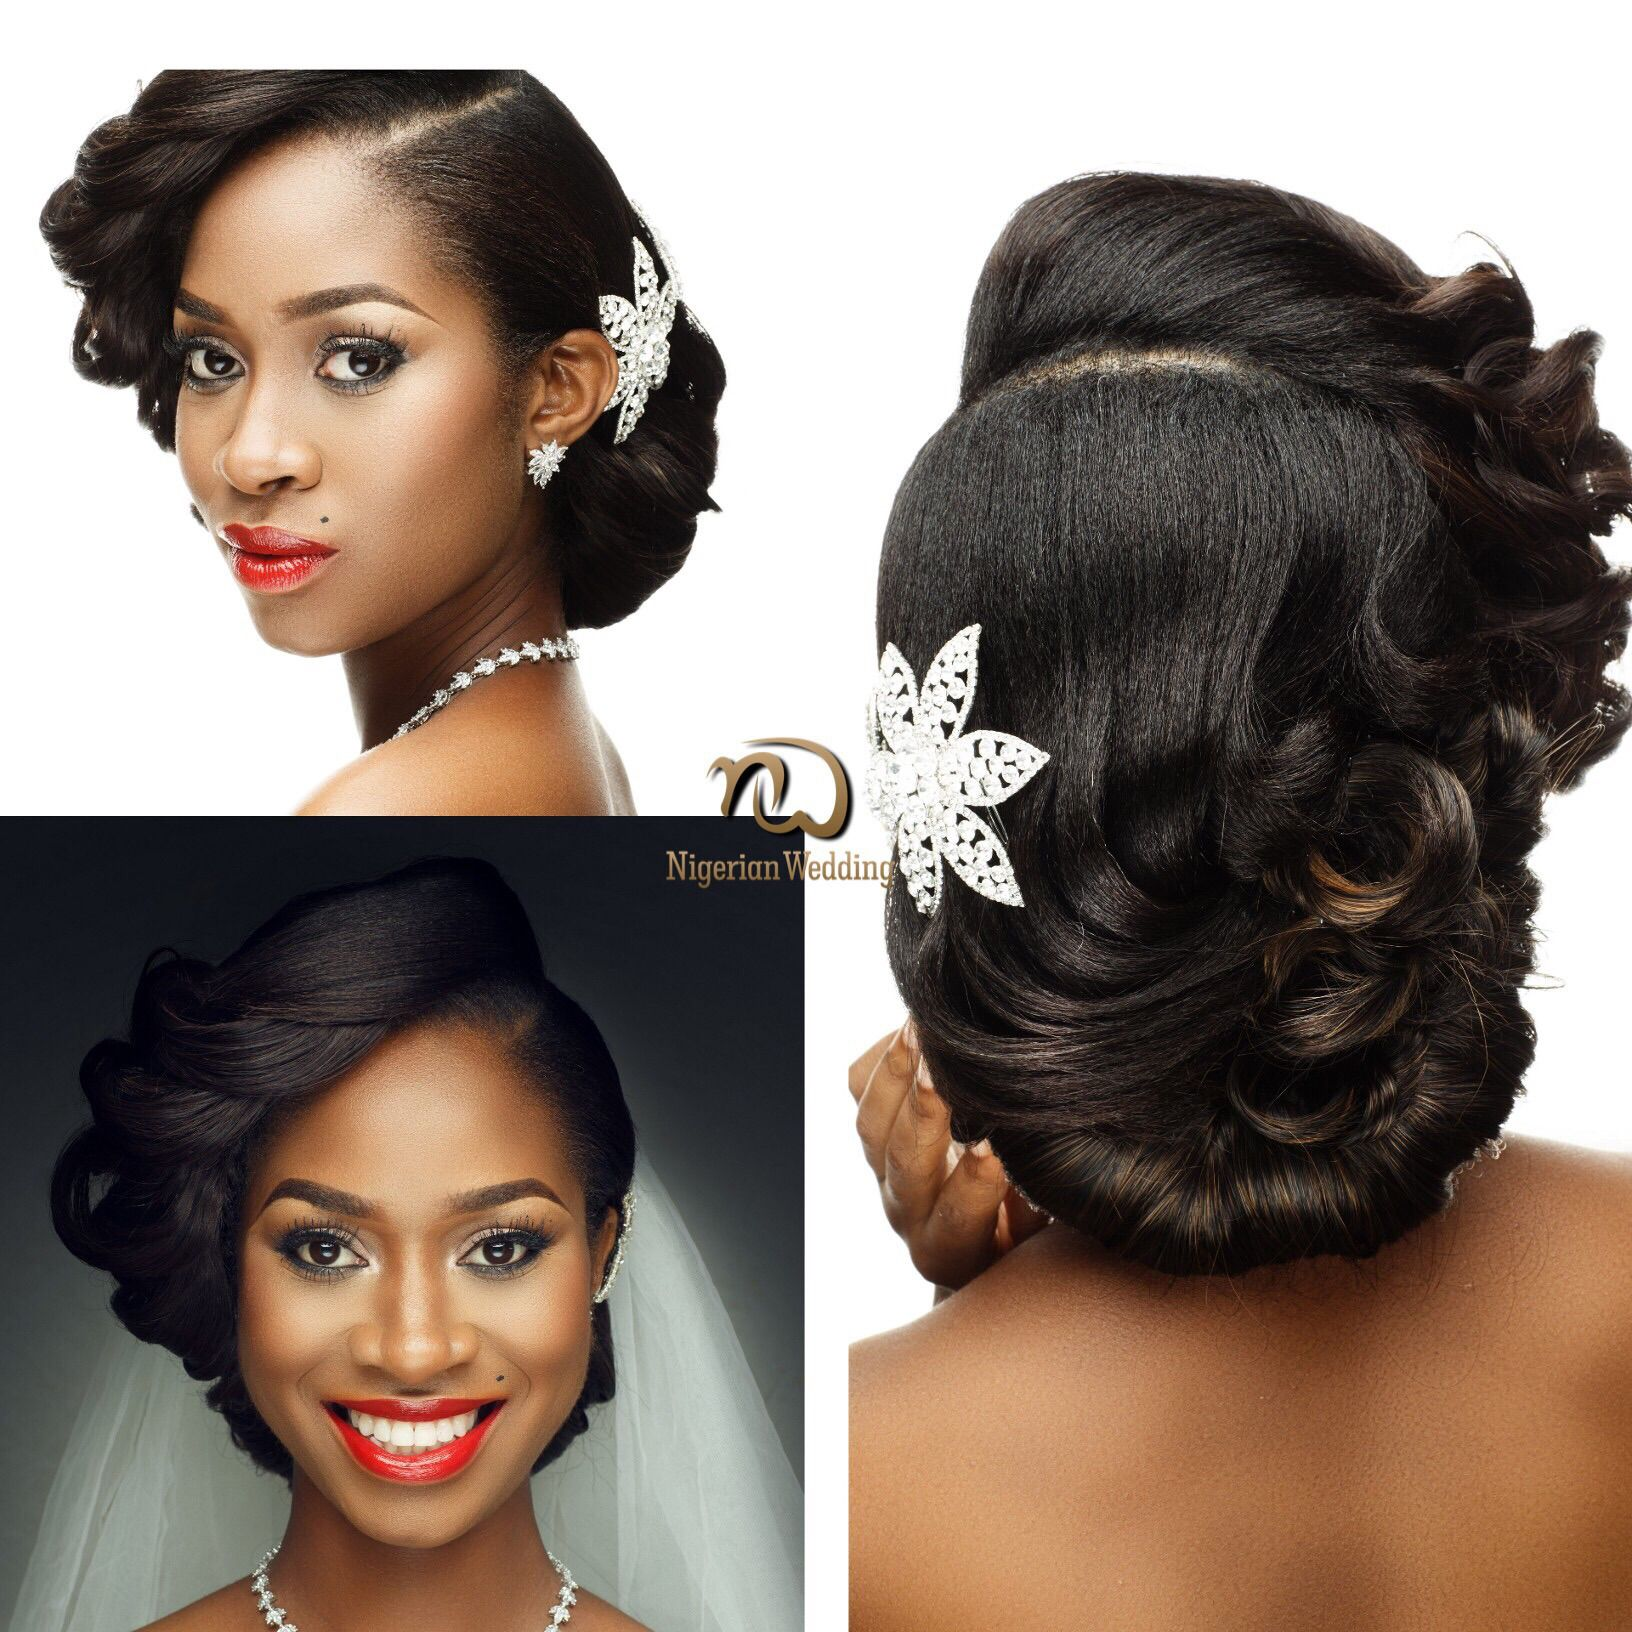 nigerian wedding presents gorgeous bridal hair & makeup inspiration